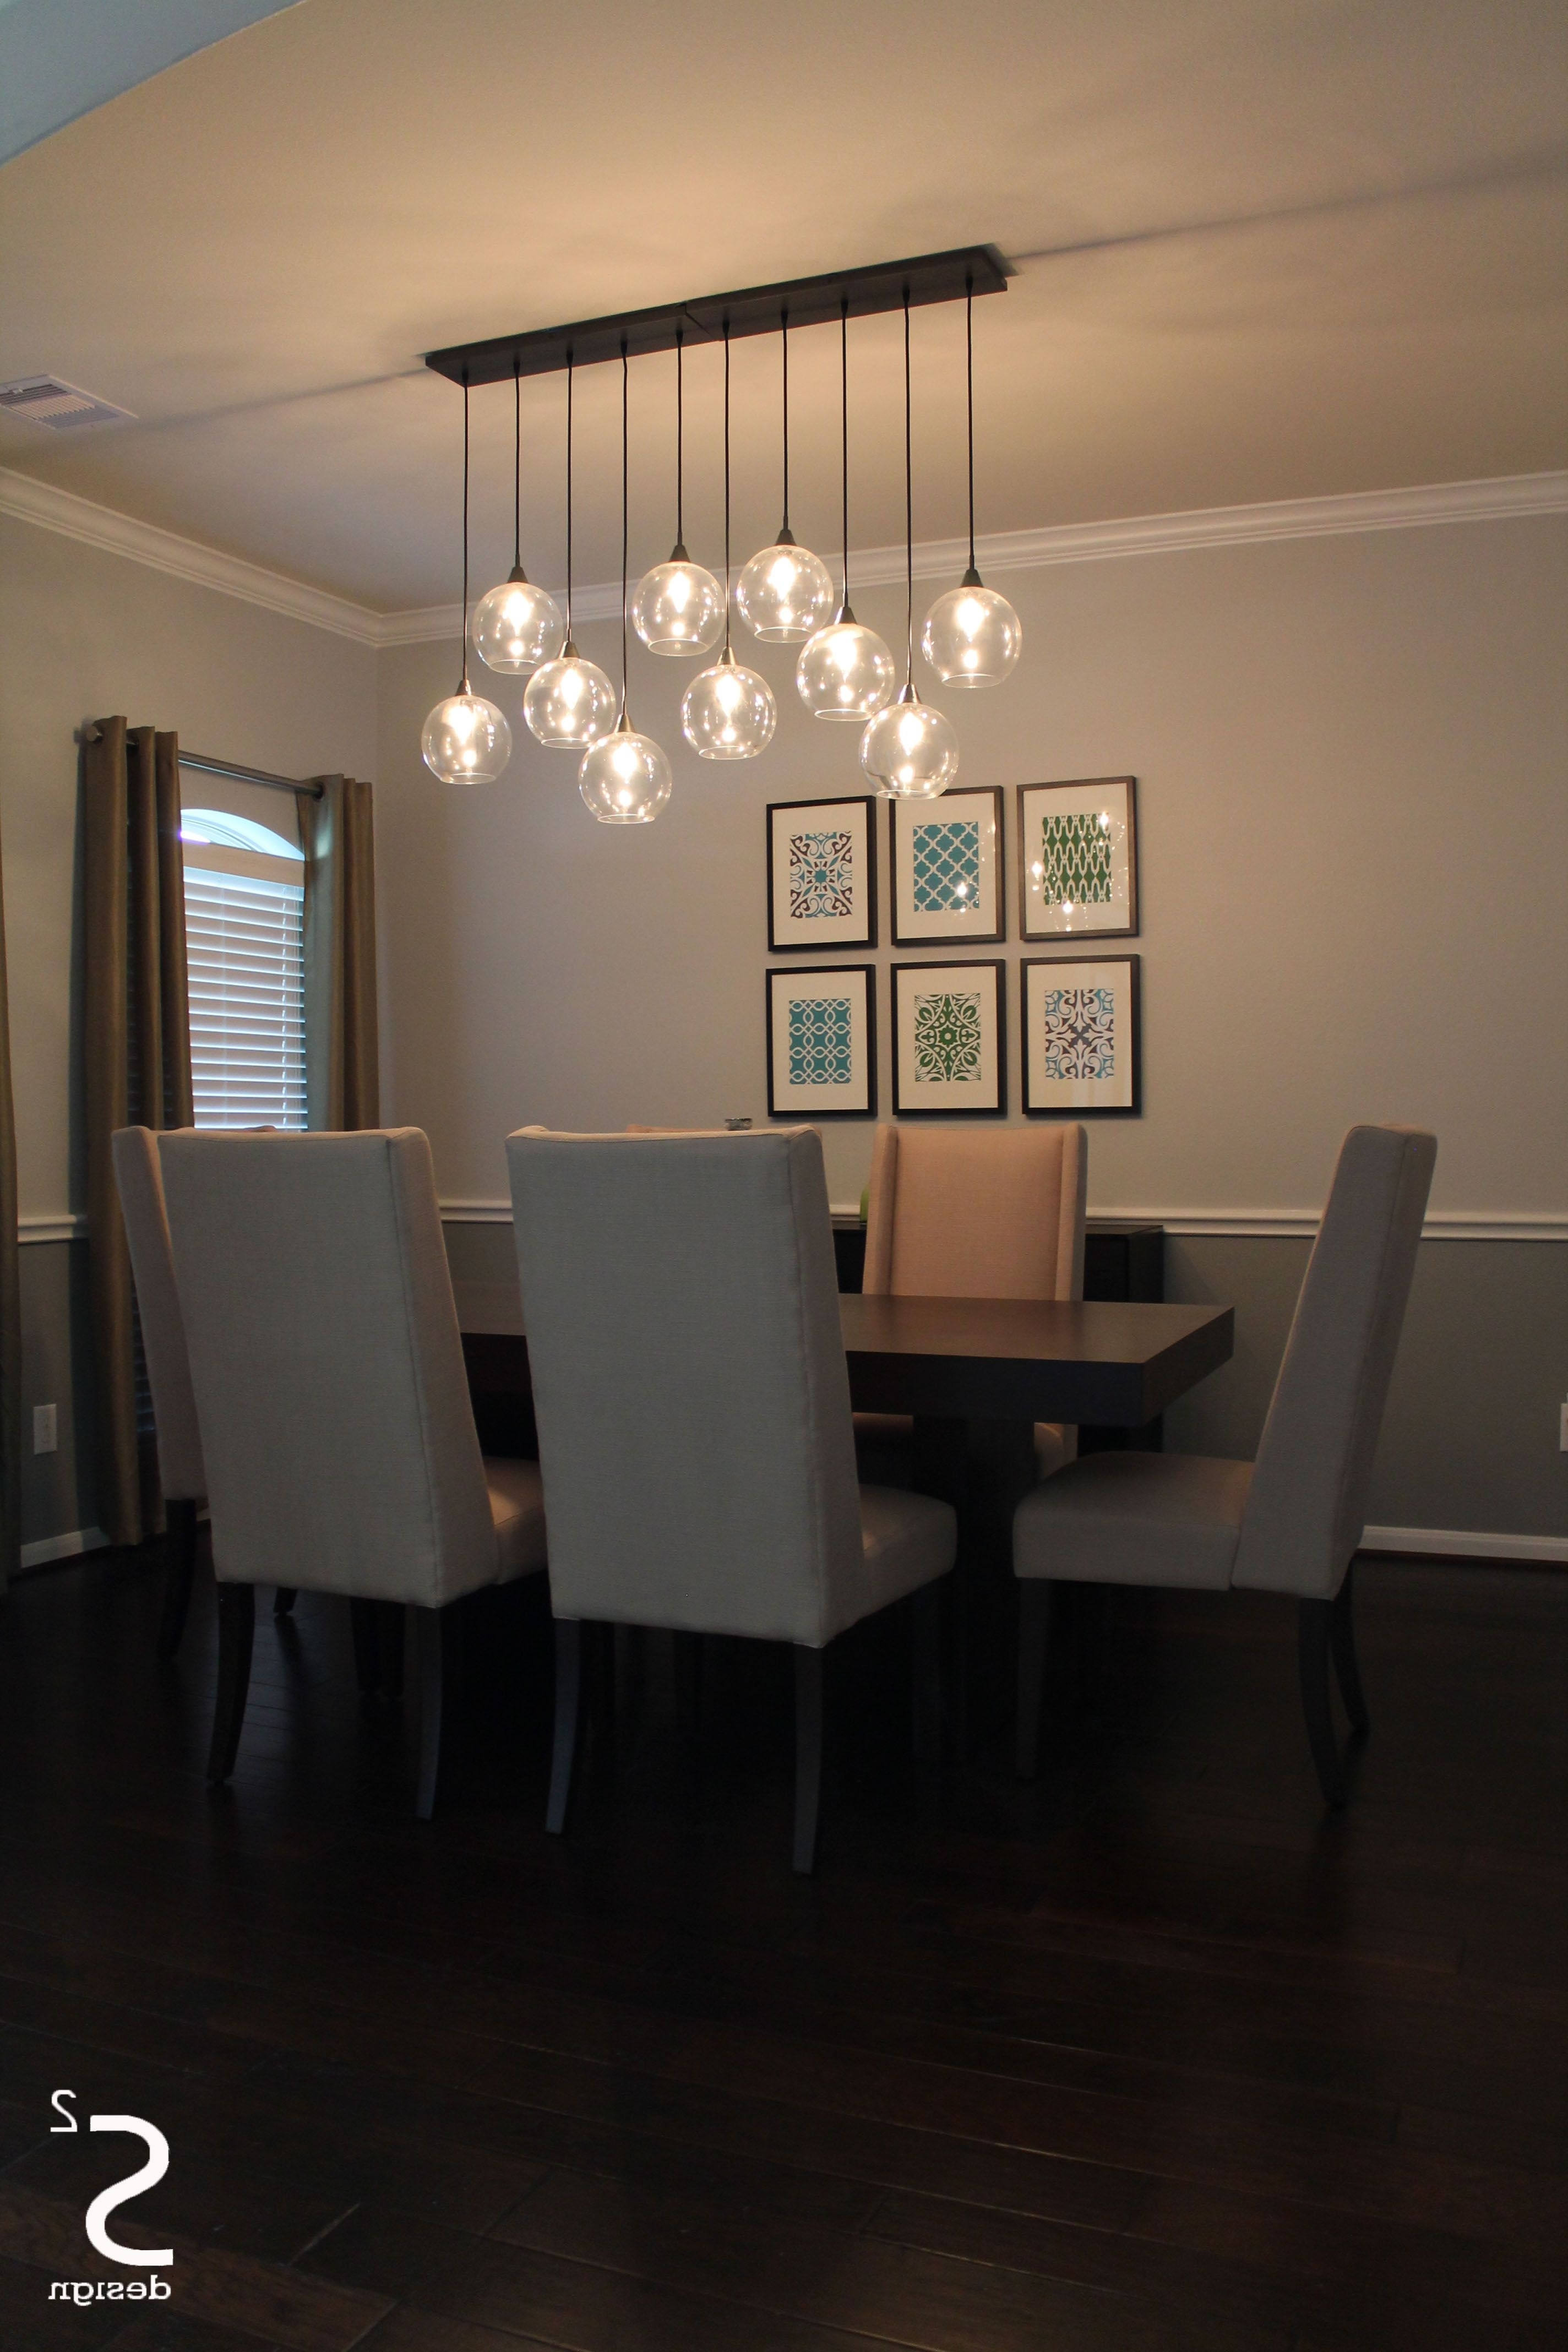 Preferred Dining Lights Above Dining Tables In Image 9069 From Post: Kitchen Table Lighting – With Cool Light (Gallery 5 of 25)